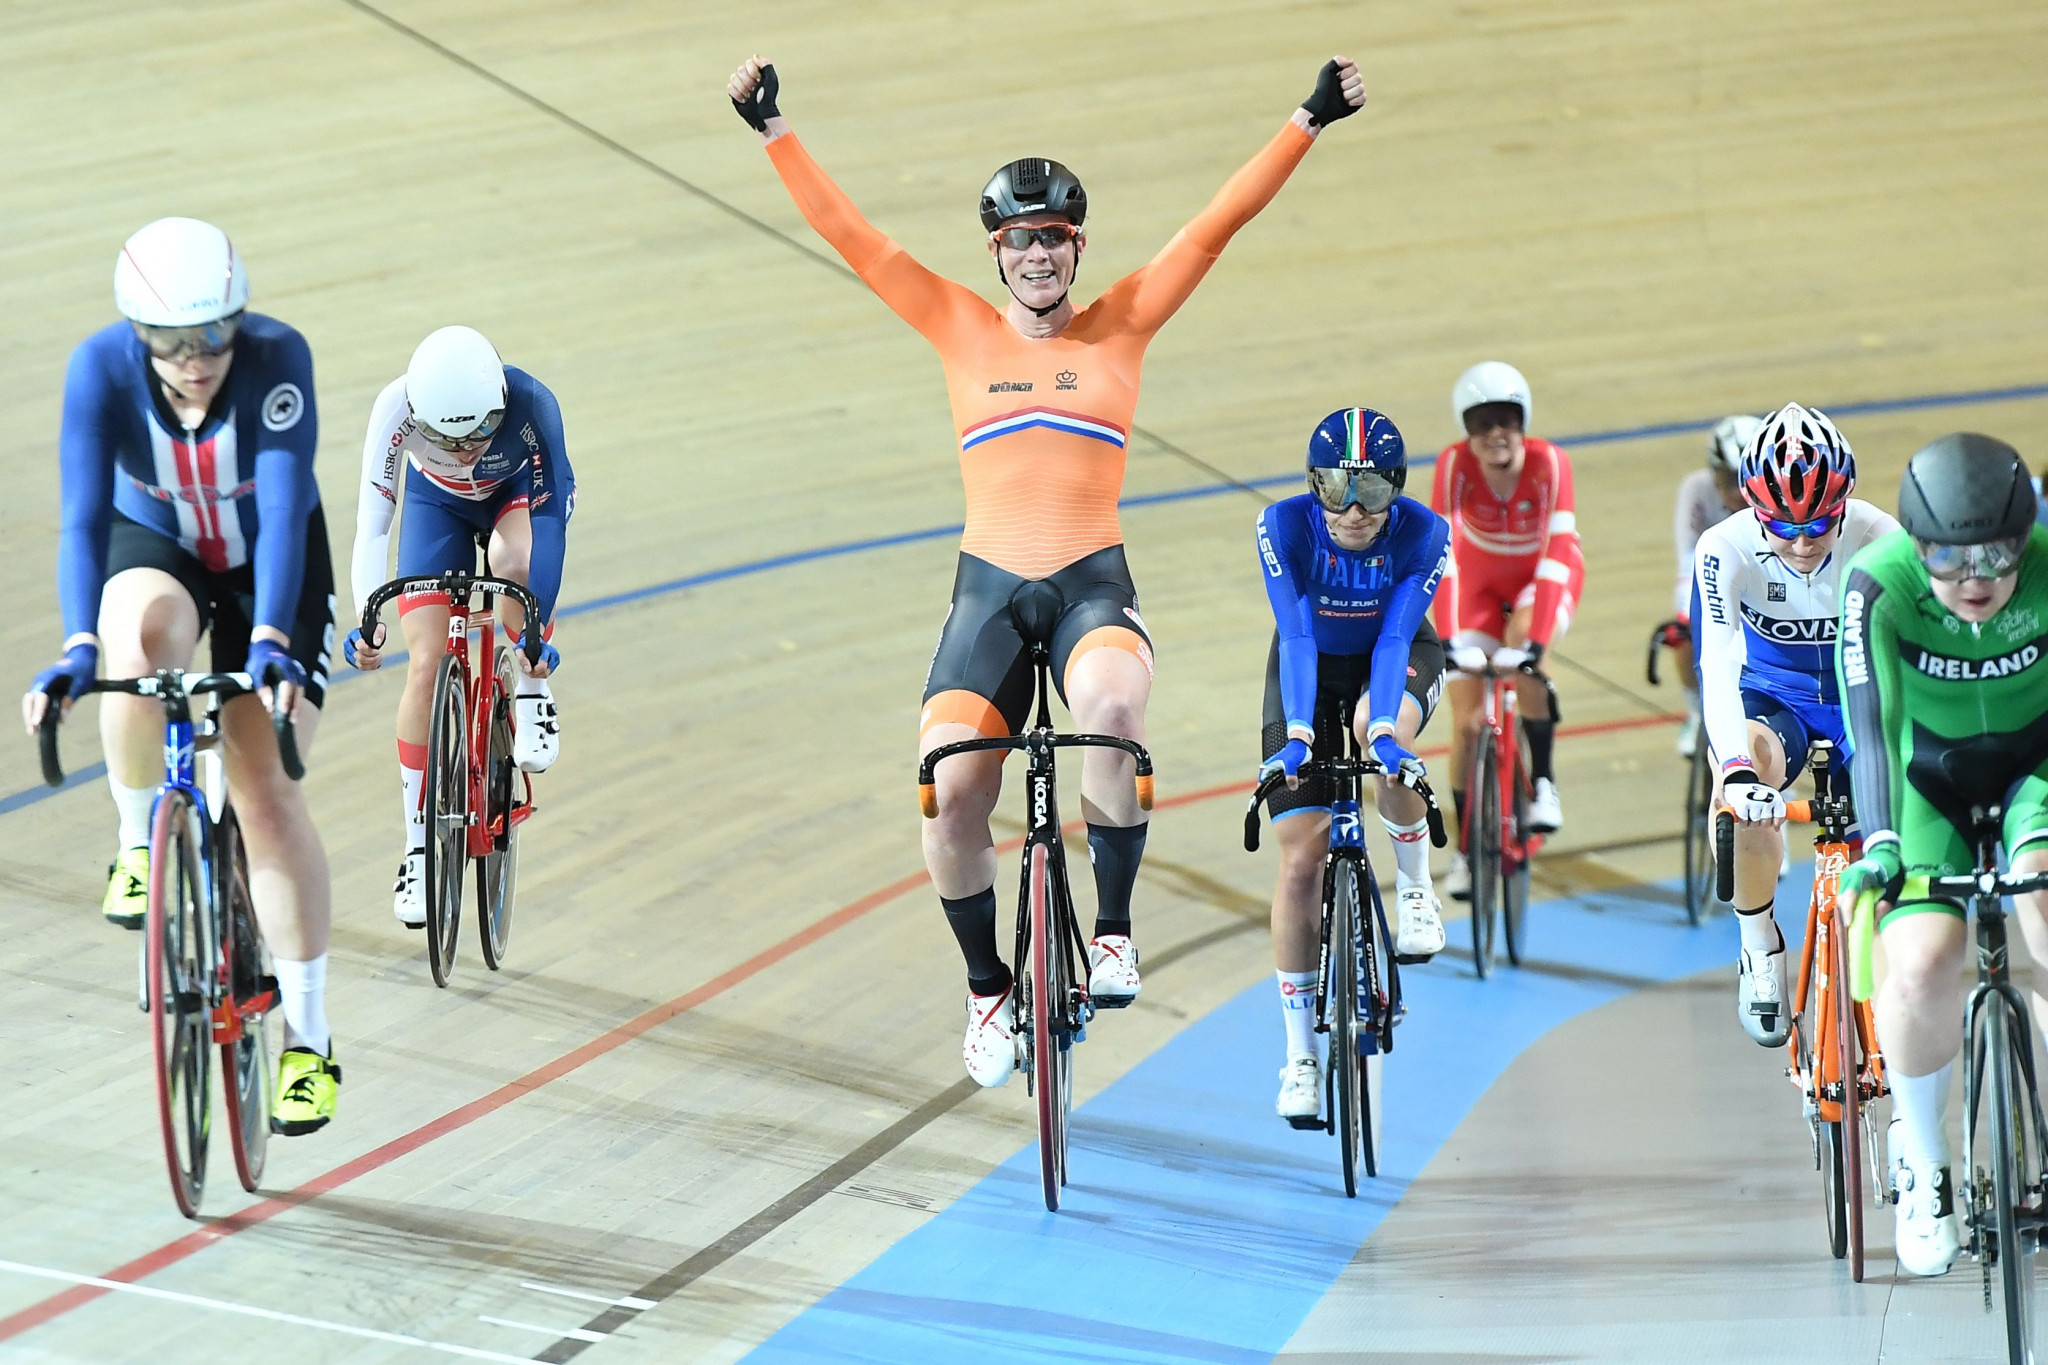 Wild earns gold again at UCI Track World Championships as Vogel matches Meares milestone